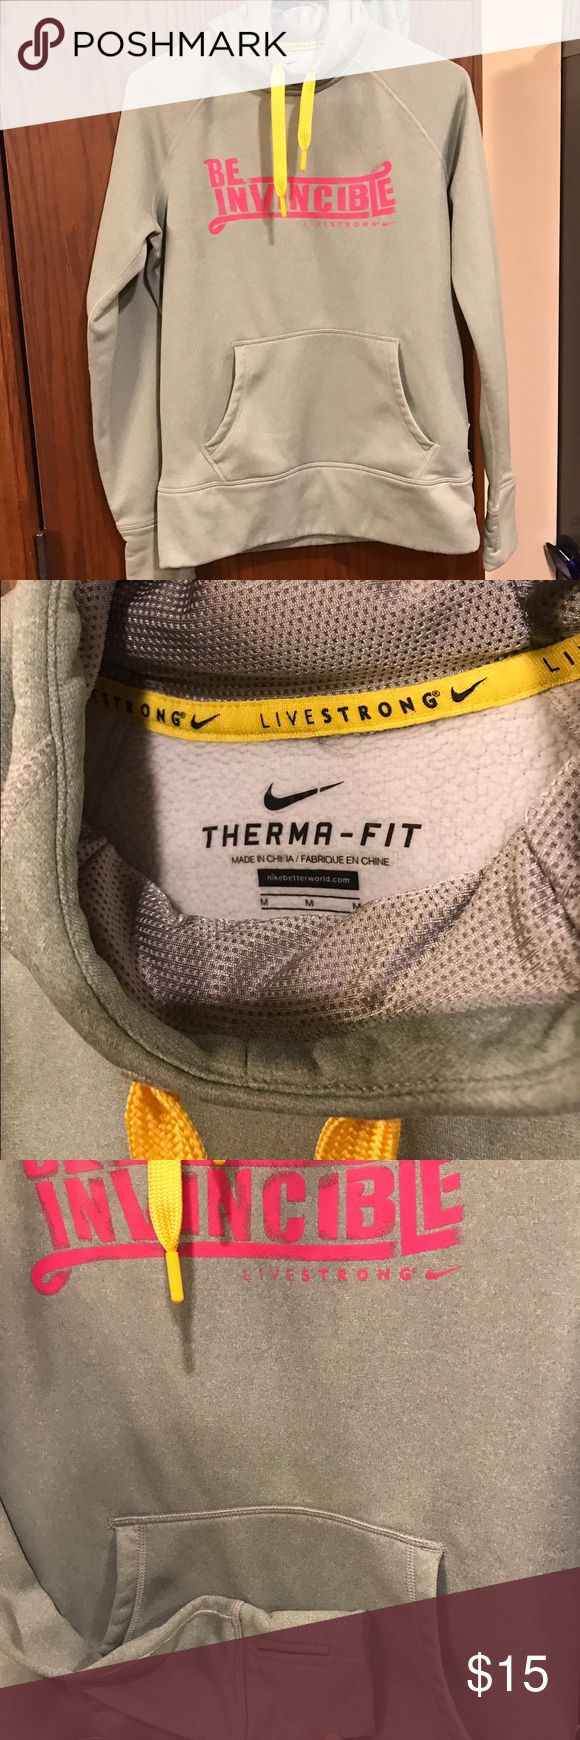 "Nike livestrong ""be invincible"" hoodie Fabric shows some wash wear. Still in good shape Nike Tops Sweatshirts & Hoodies"